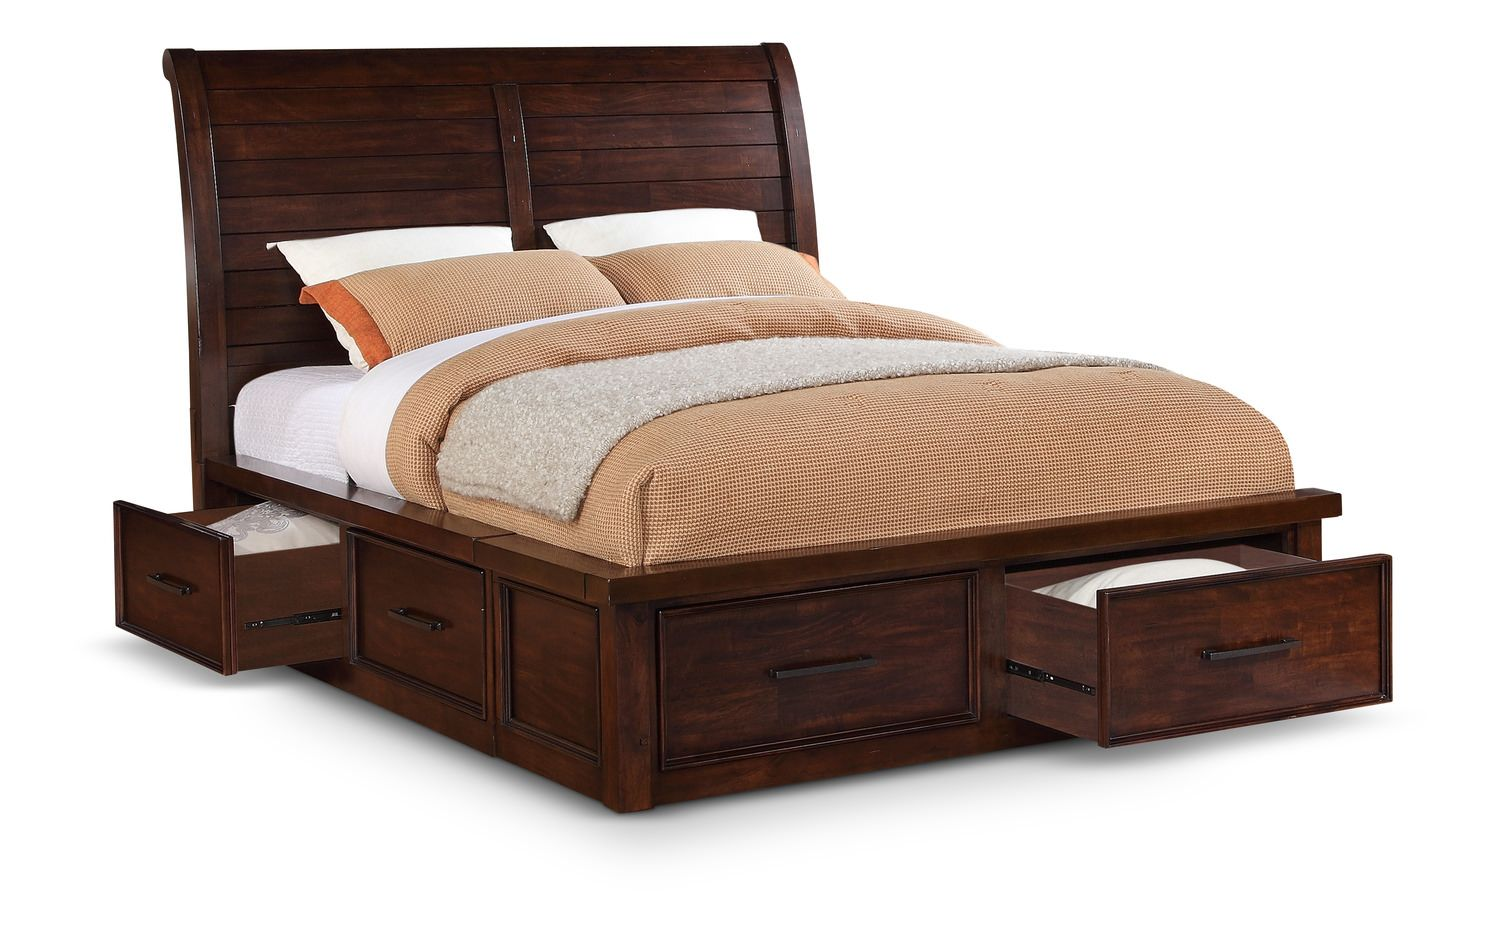 Best Delray King Sleigh Bed With Storage And Awesome Bedding 640 x 480